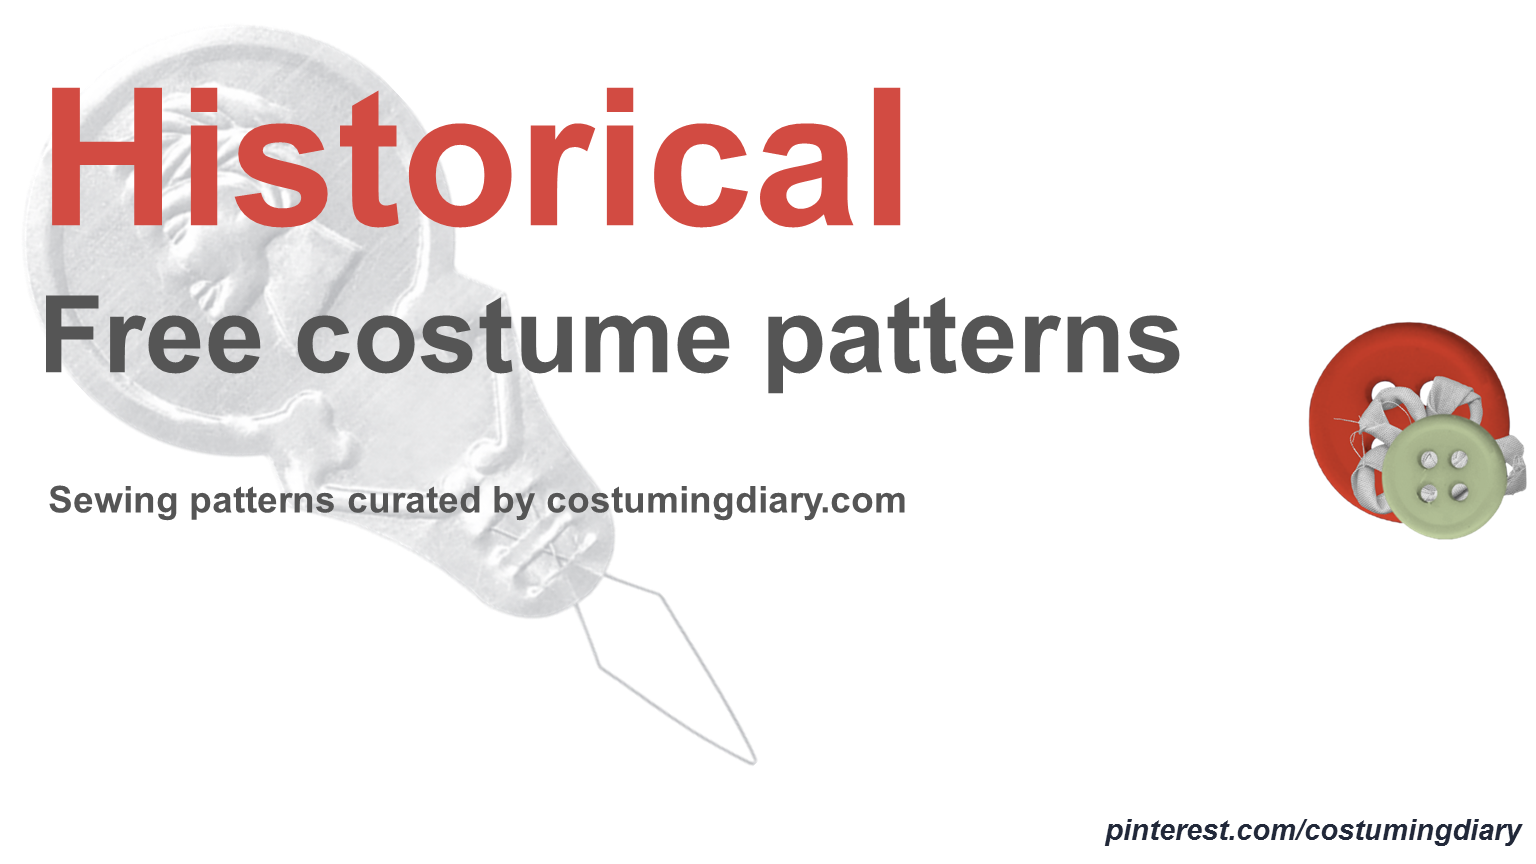 free historical costume patterns https://www.pinterest.com/costumingdiary/free-historical-costume-patterns/